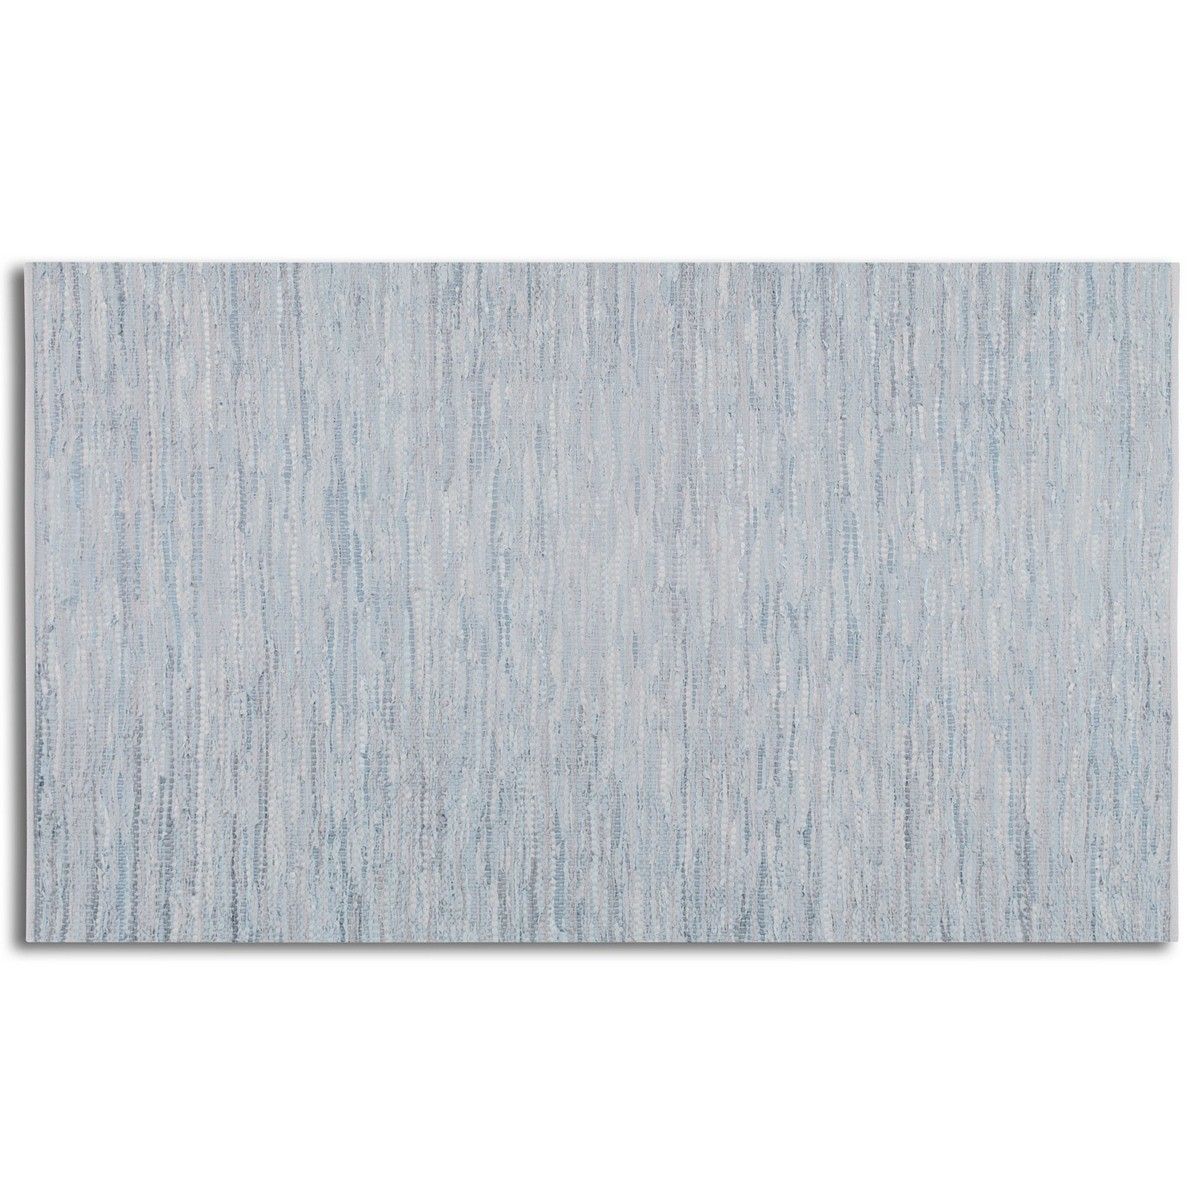 Uttermost Everit 5 X 8 Rug - Silver